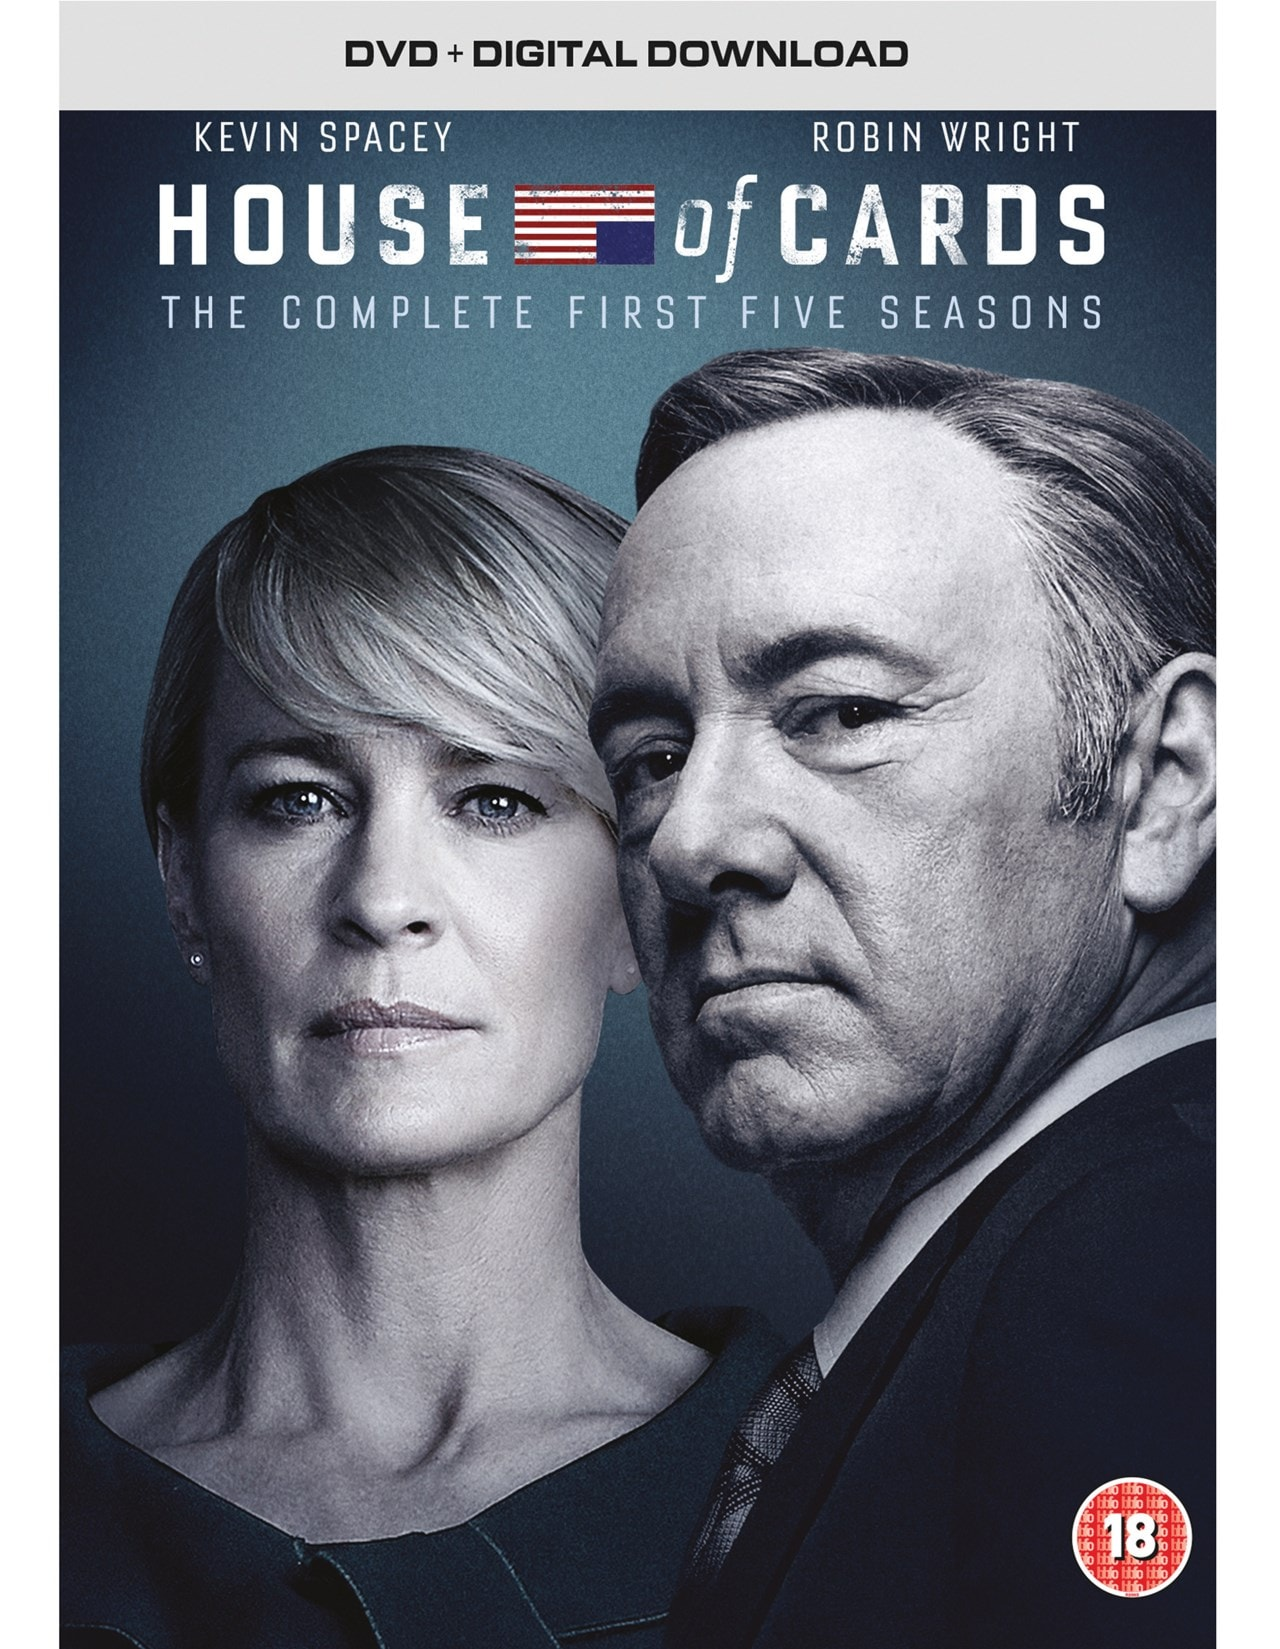 House Of Cards Seasons 1 5 Dvd Box Set Free Shipping Over 20 Hmv Store